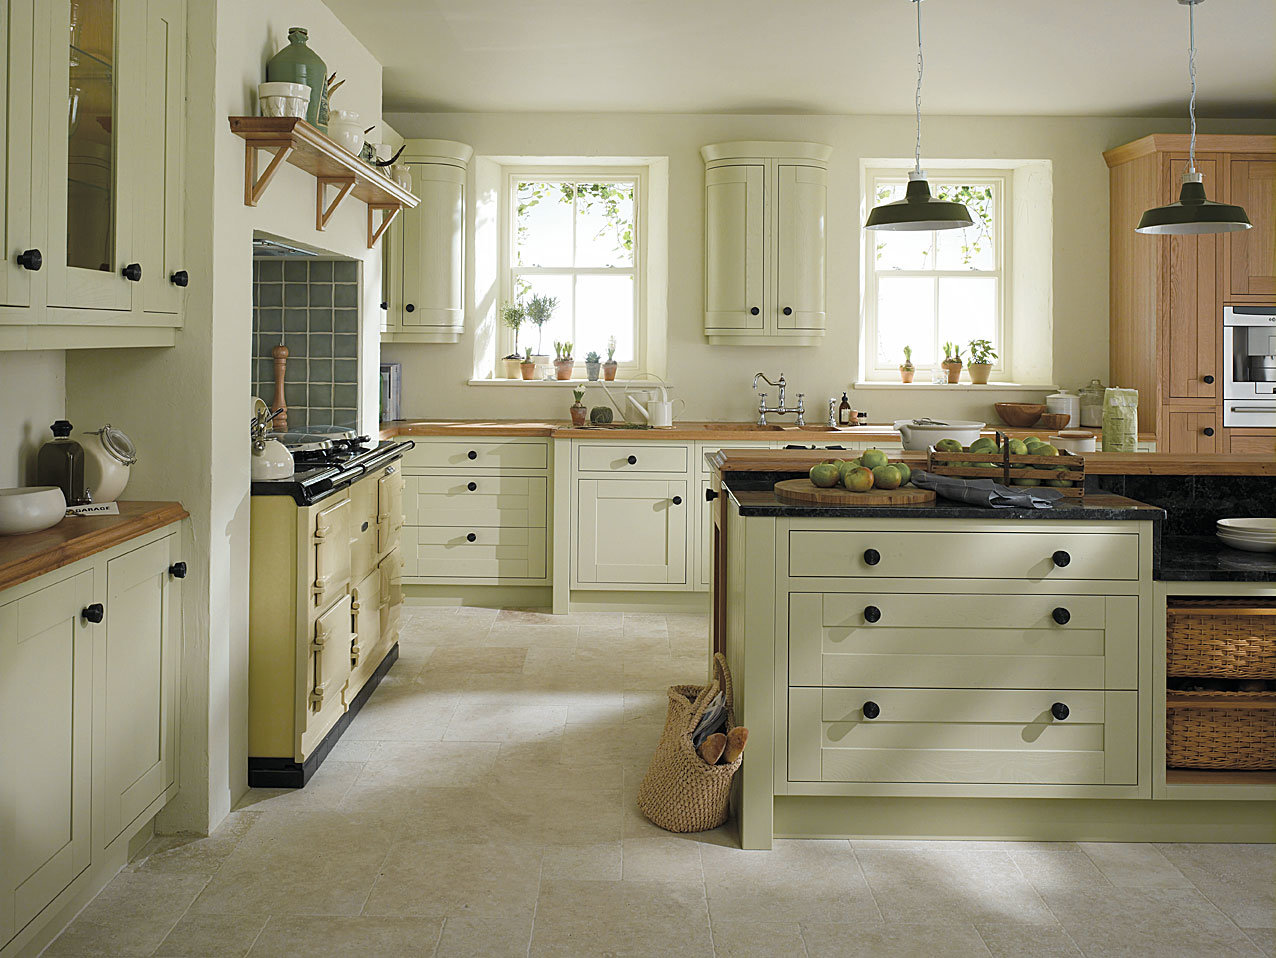 Design Features For Traditional Kitchens Homematas